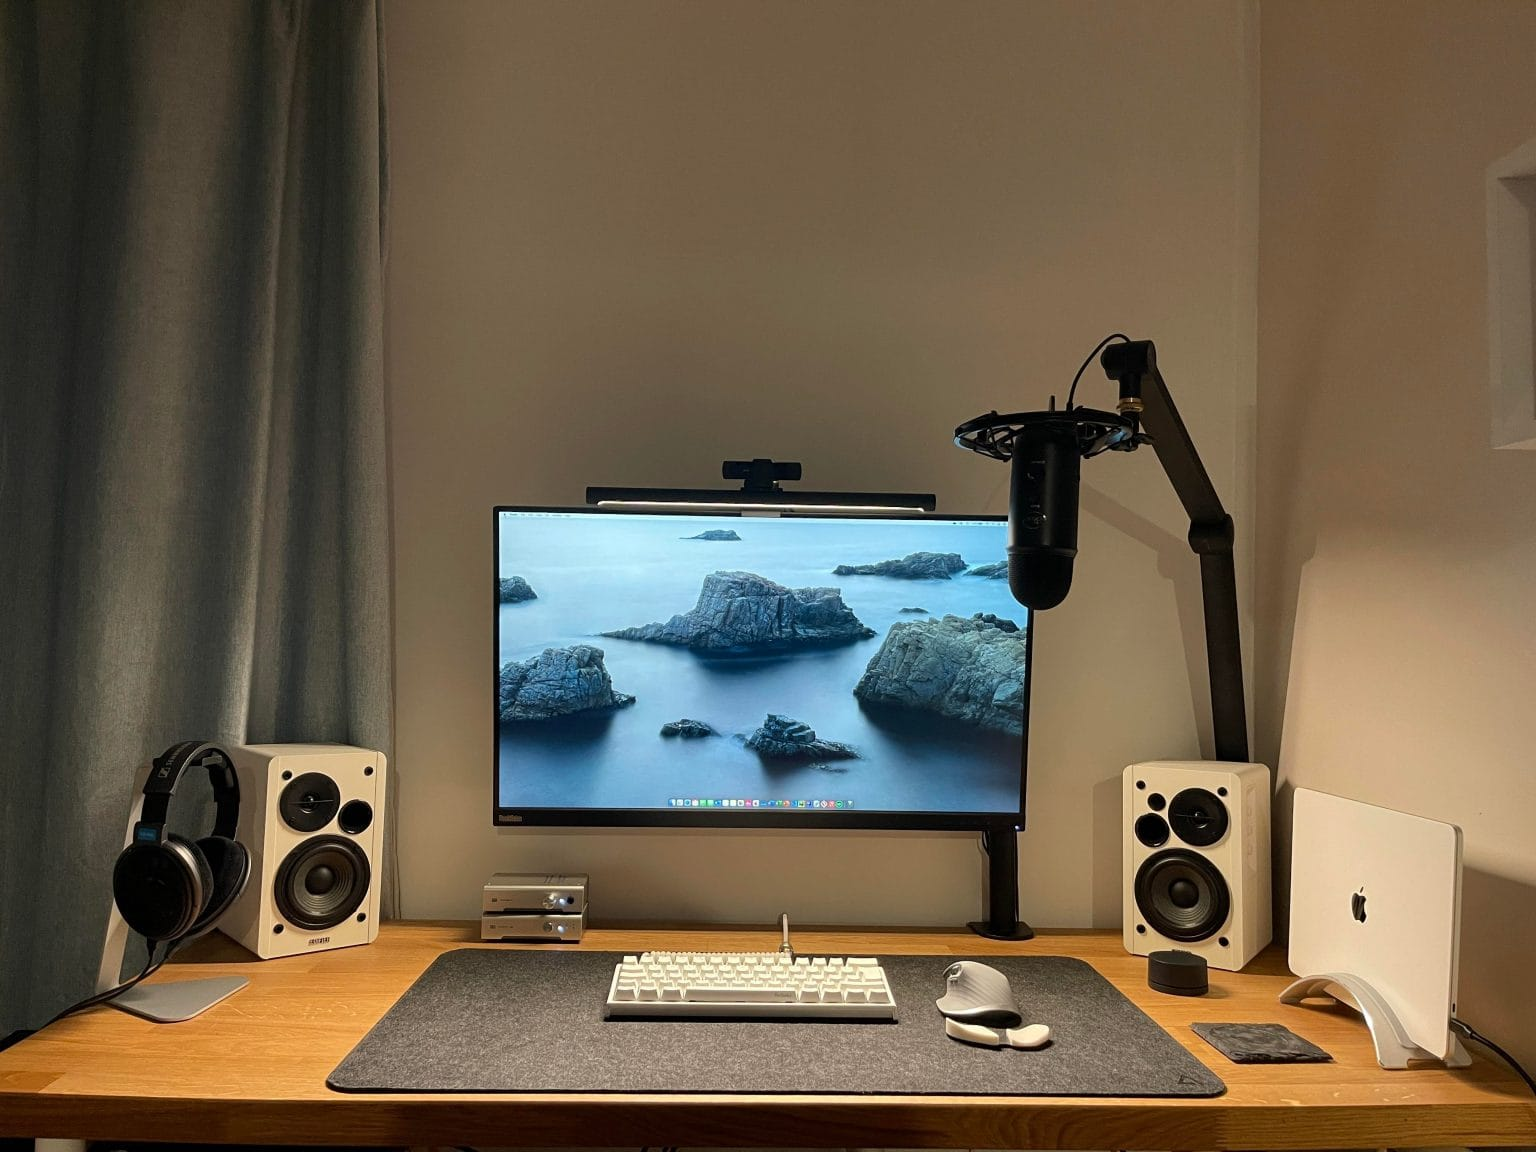 This MacBook Pro M1 setup is all about quality audio.